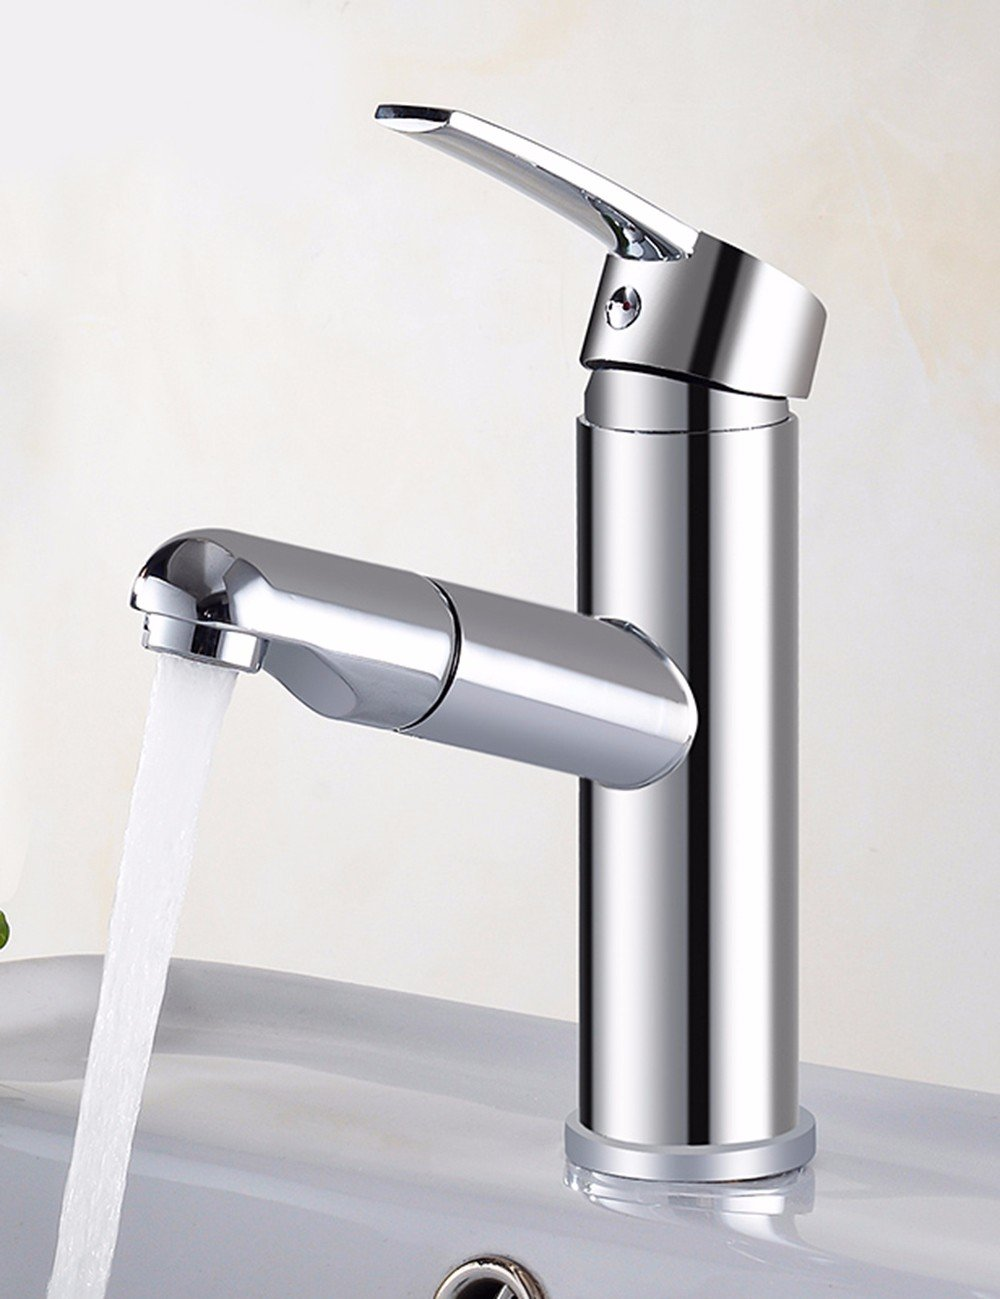 Faucet Basin Faucet Copper Bath Faucet Hot And Cold Dish Washing Basin Faucet Drawing Faucet Hot And Cold